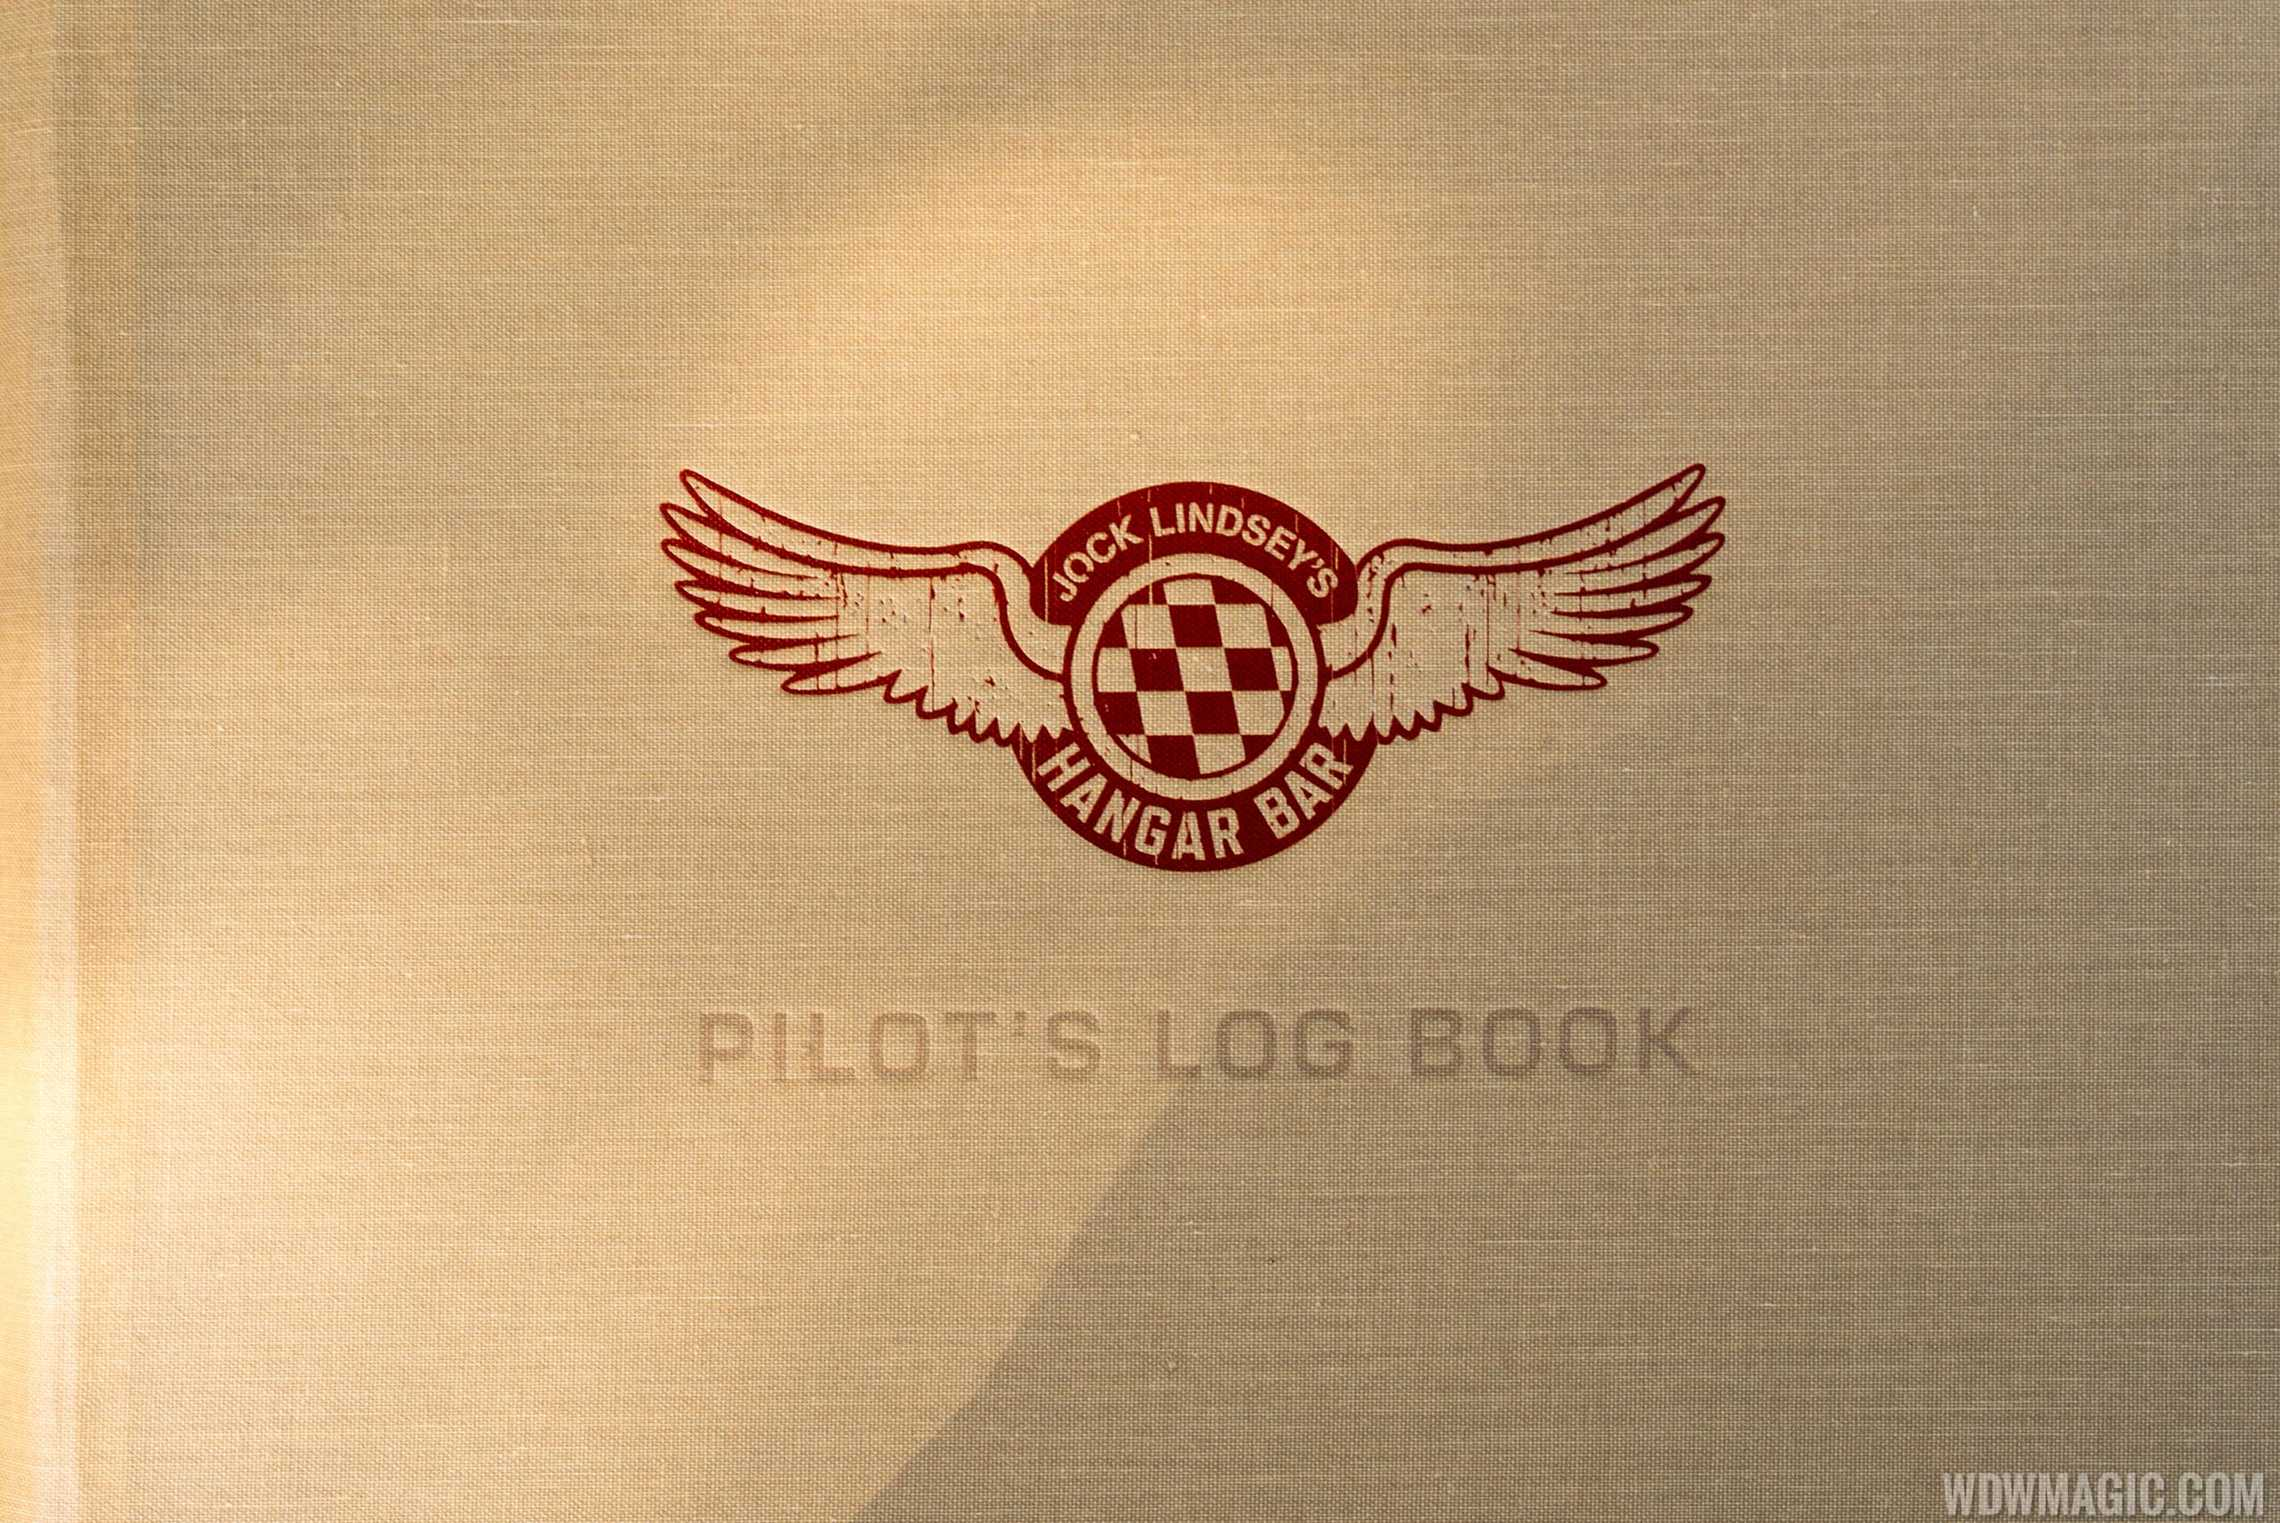 Jock Lindsey's Pilot's Log book - Full Menu